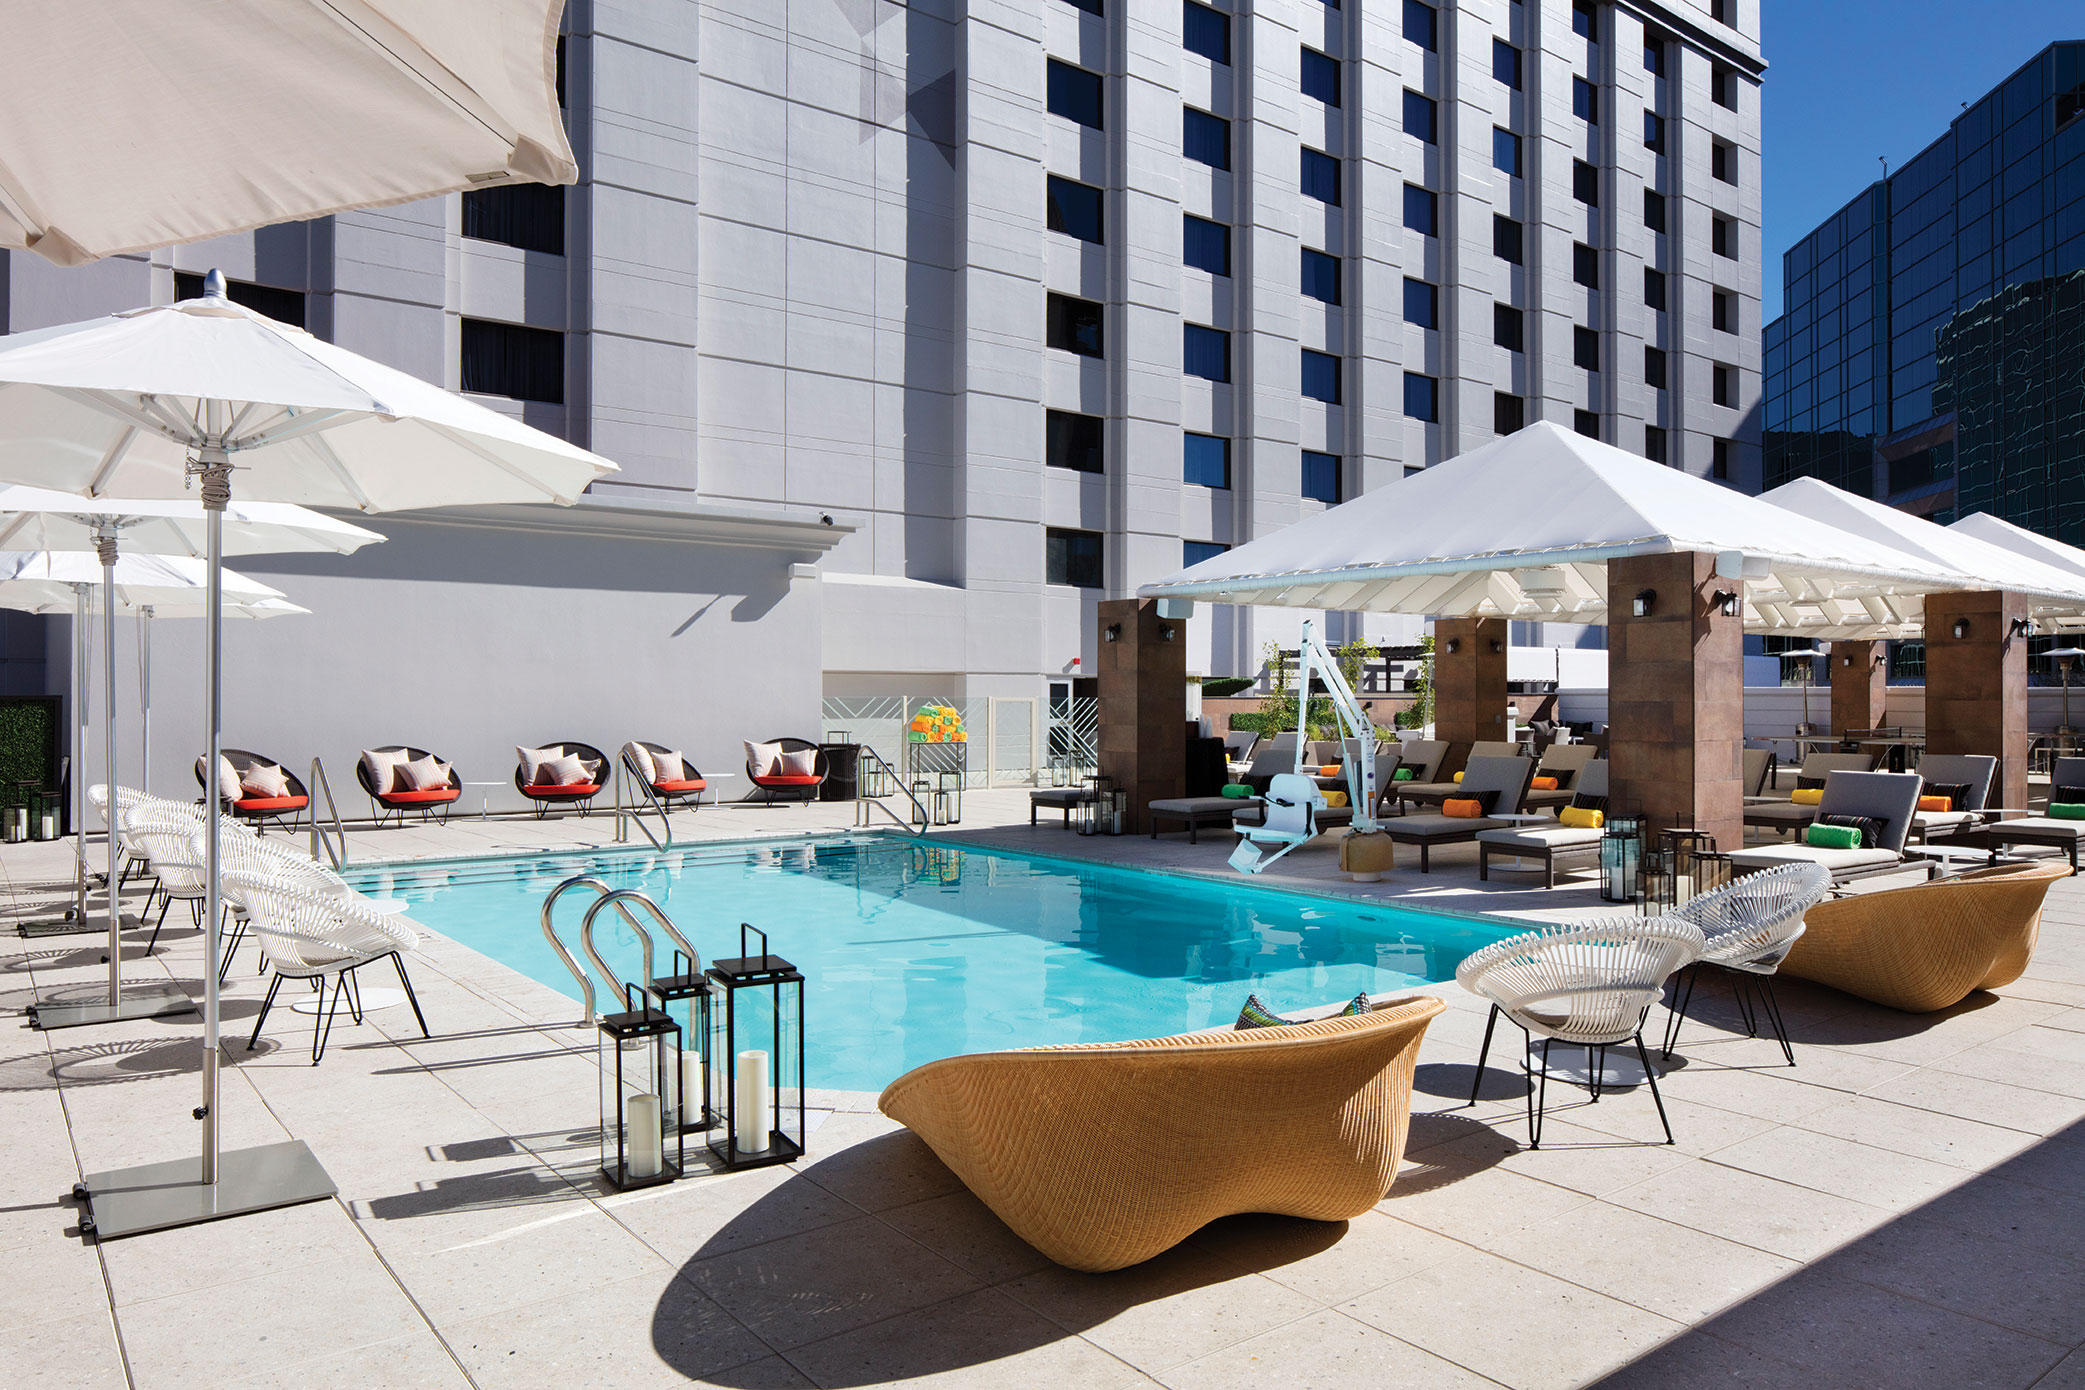 Phoenix hotels The Camby rooftop pool arizona travel